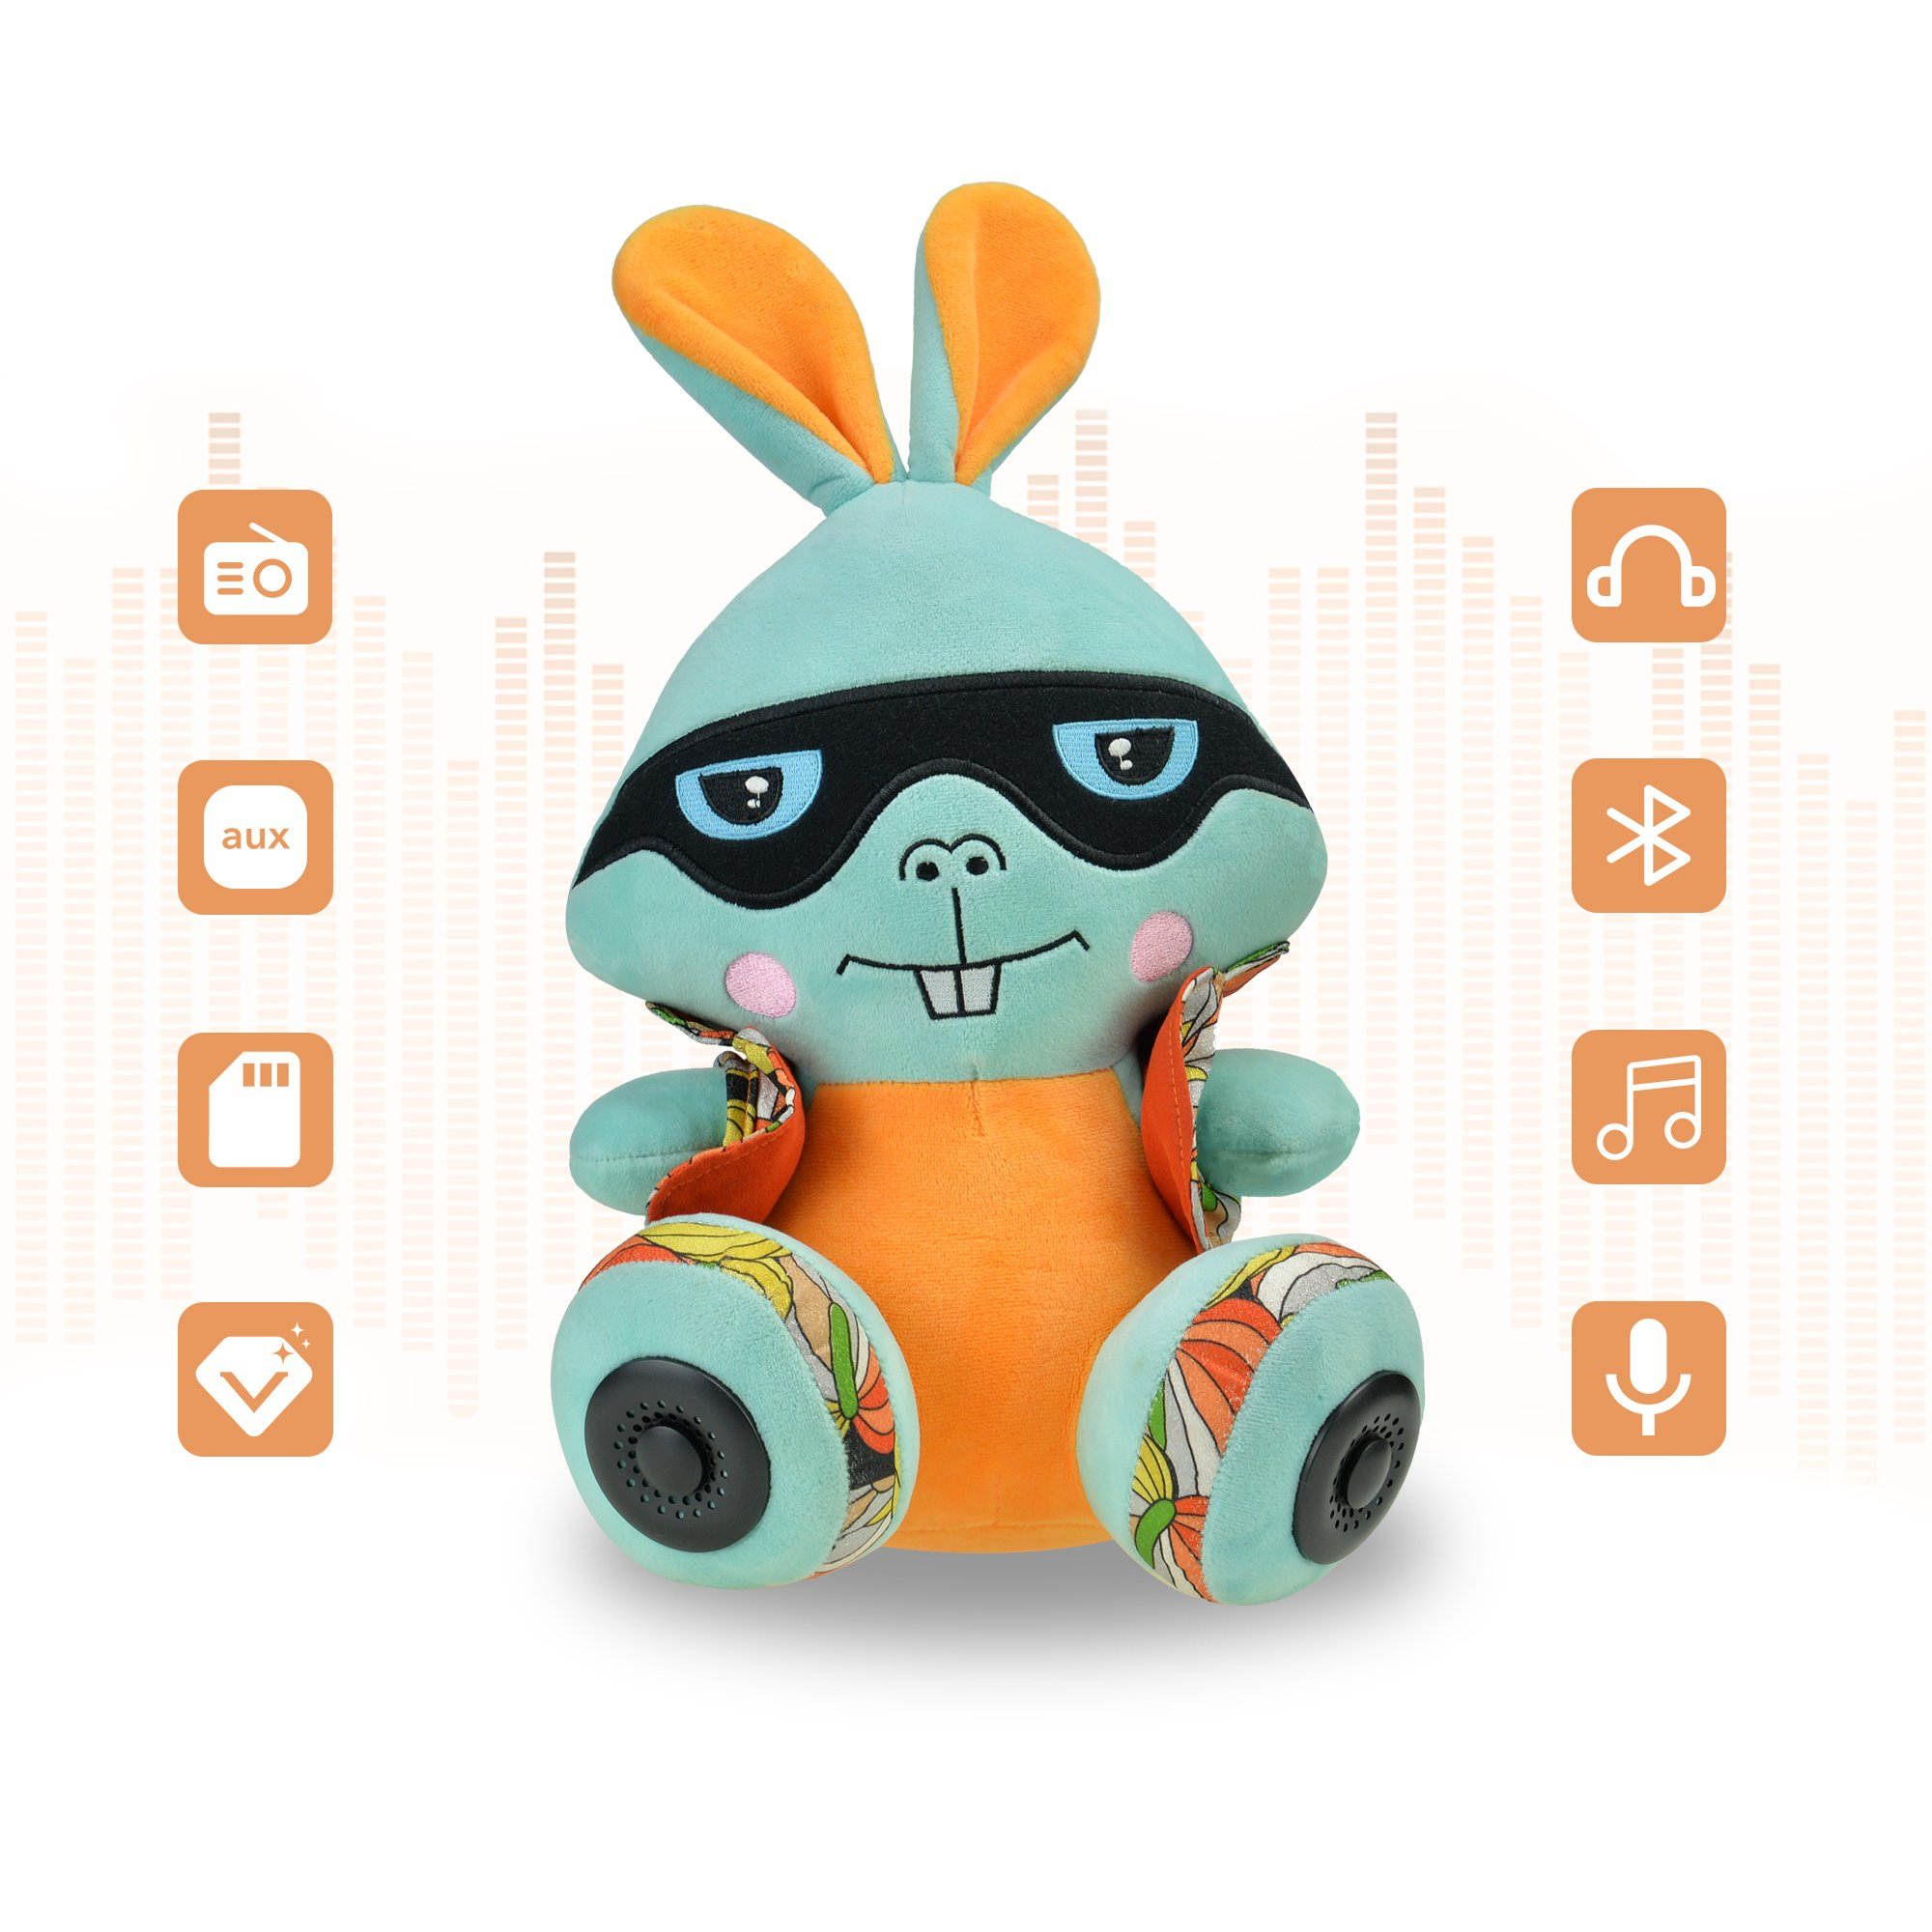 CALEEO Portable Bluetooth Speaker Funny rabbit with Built-in-Mic,Handsfree Call,AUX Line,TF Card,HD Sound and Bass for Iphone Ipad Android Smartphone (Bunny2)